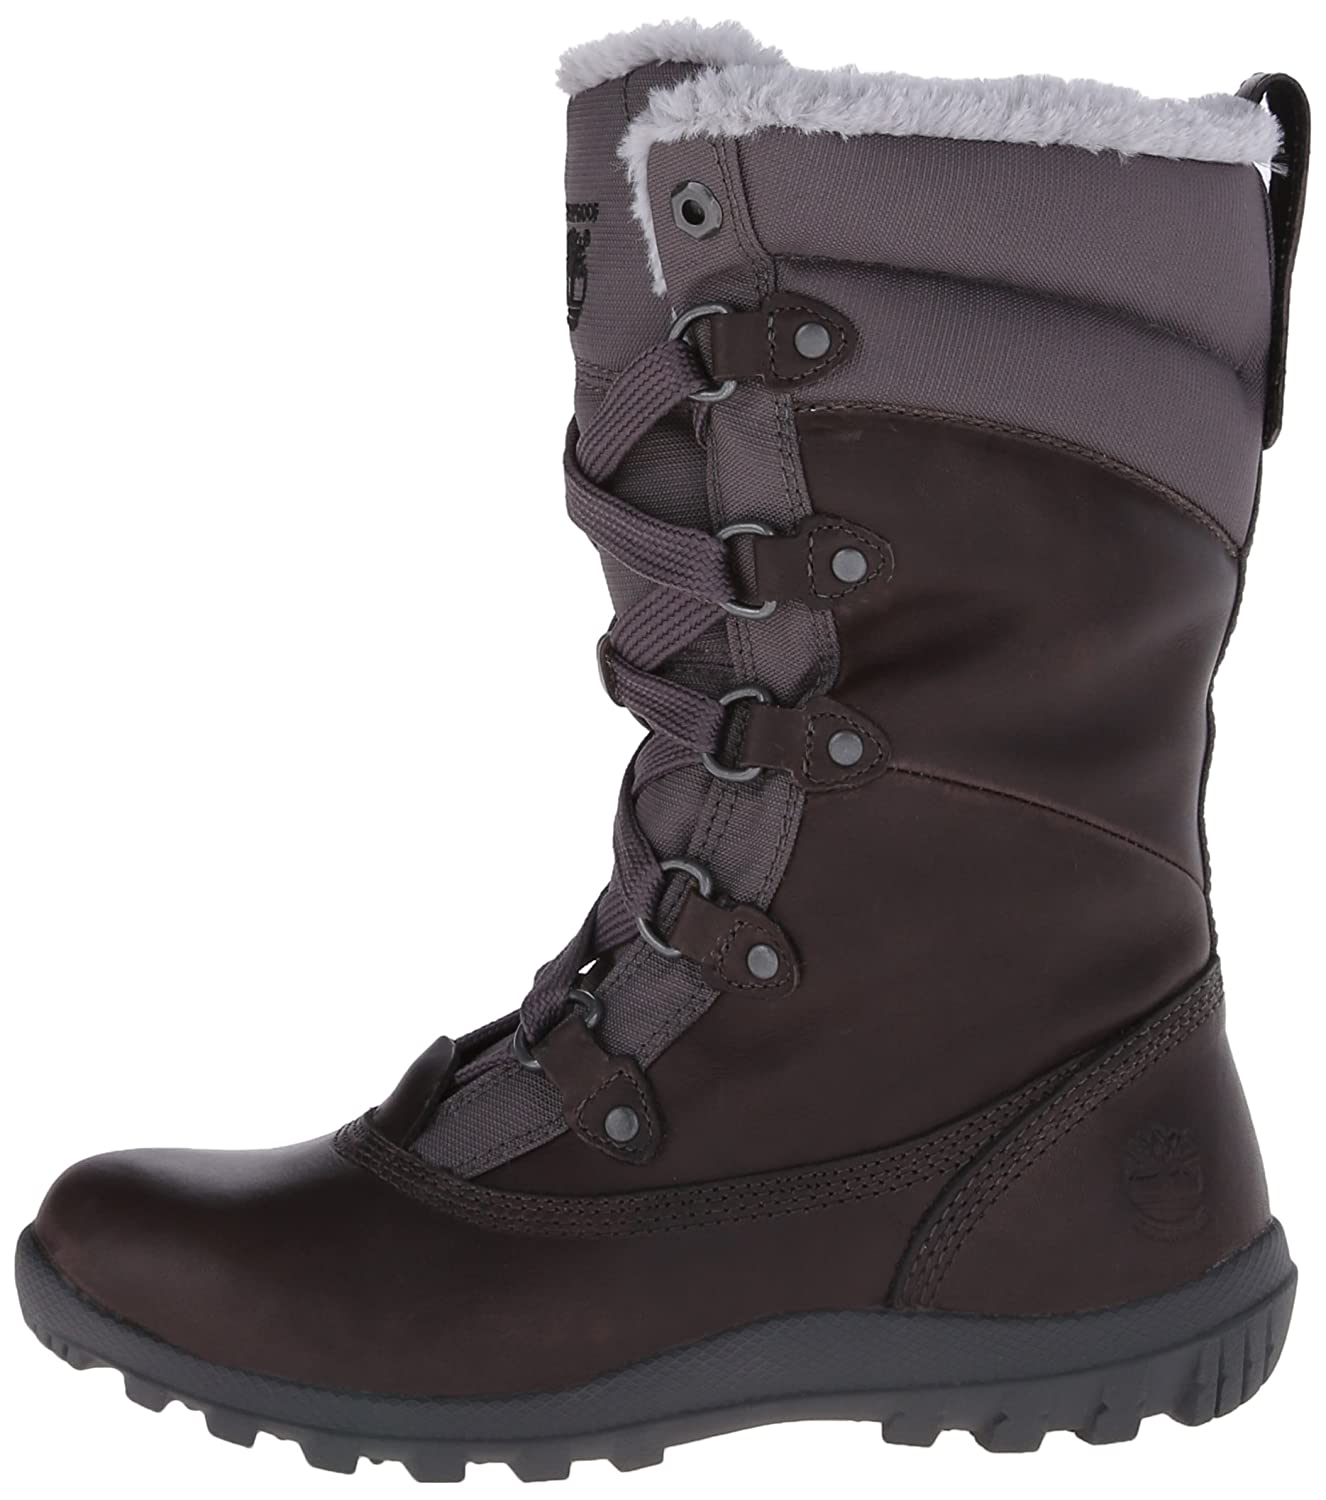 3cfabd88ccb Timberland Women's Mount Hope Mid F/L WP Winter Boot